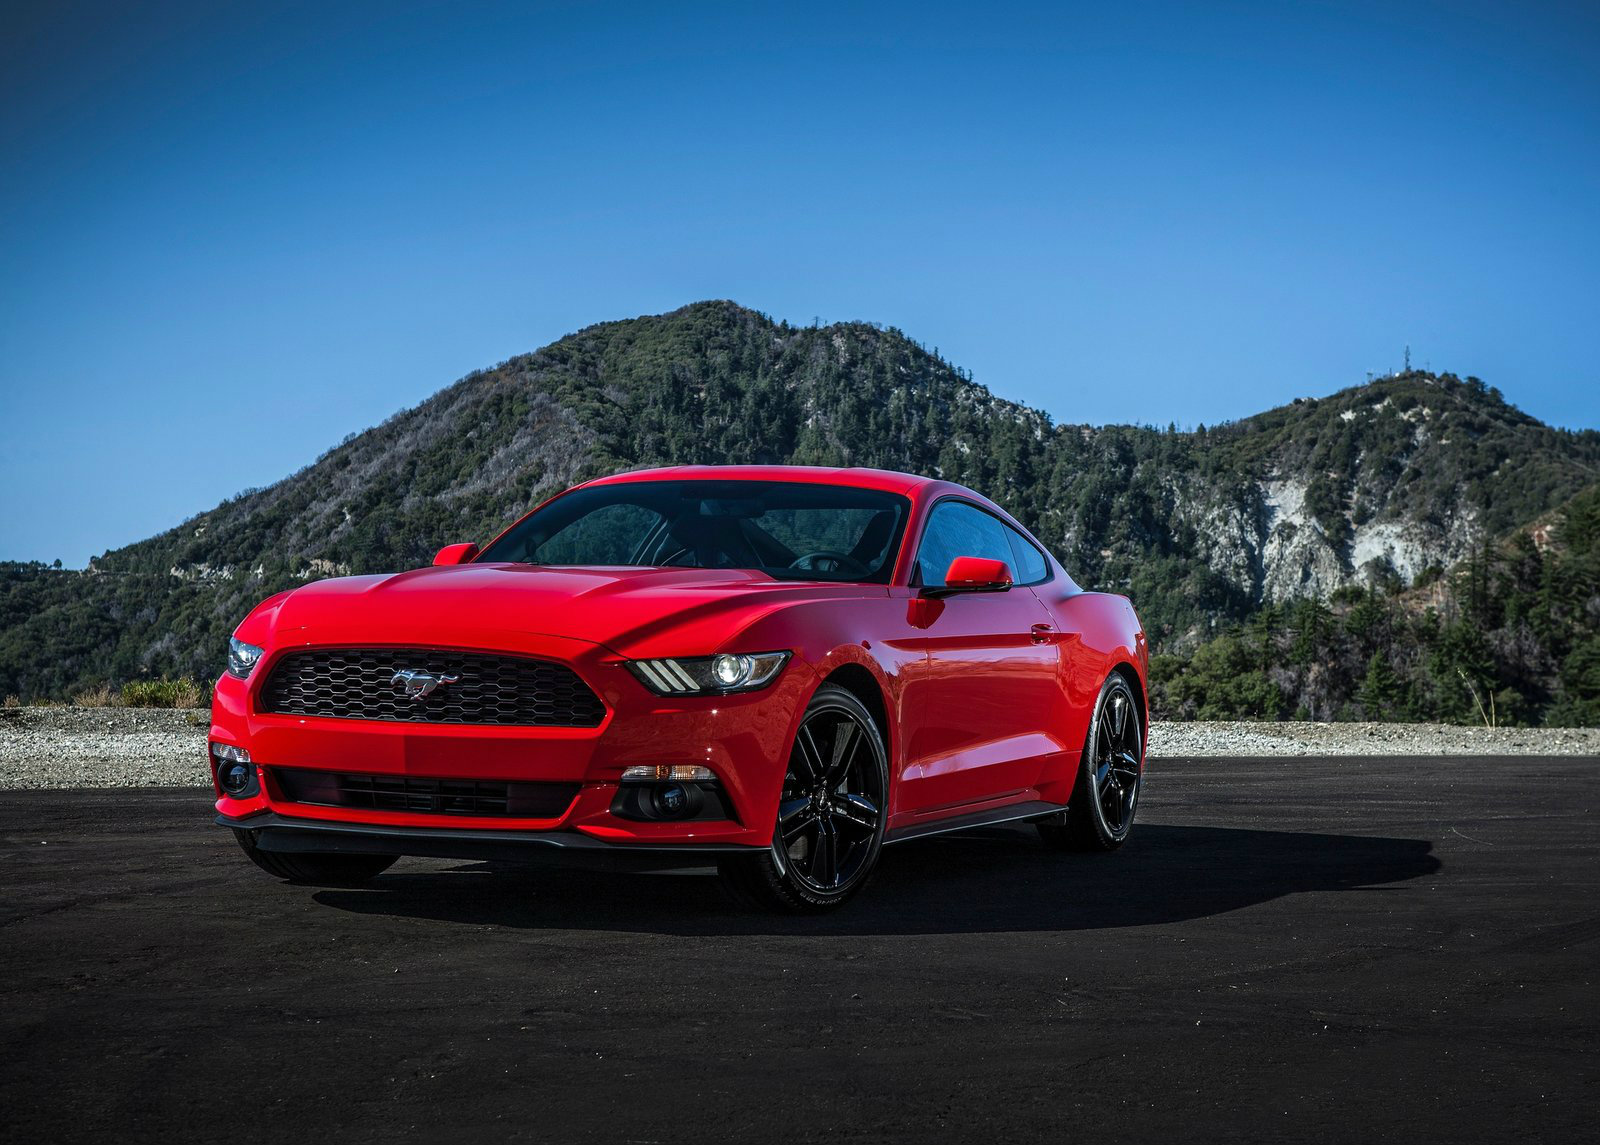 2015 ford mustang european pricing announced 2 3 liter ecoboost manual starts from 34 000. Black Bedroom Furniture Sets. Home Design Ideas